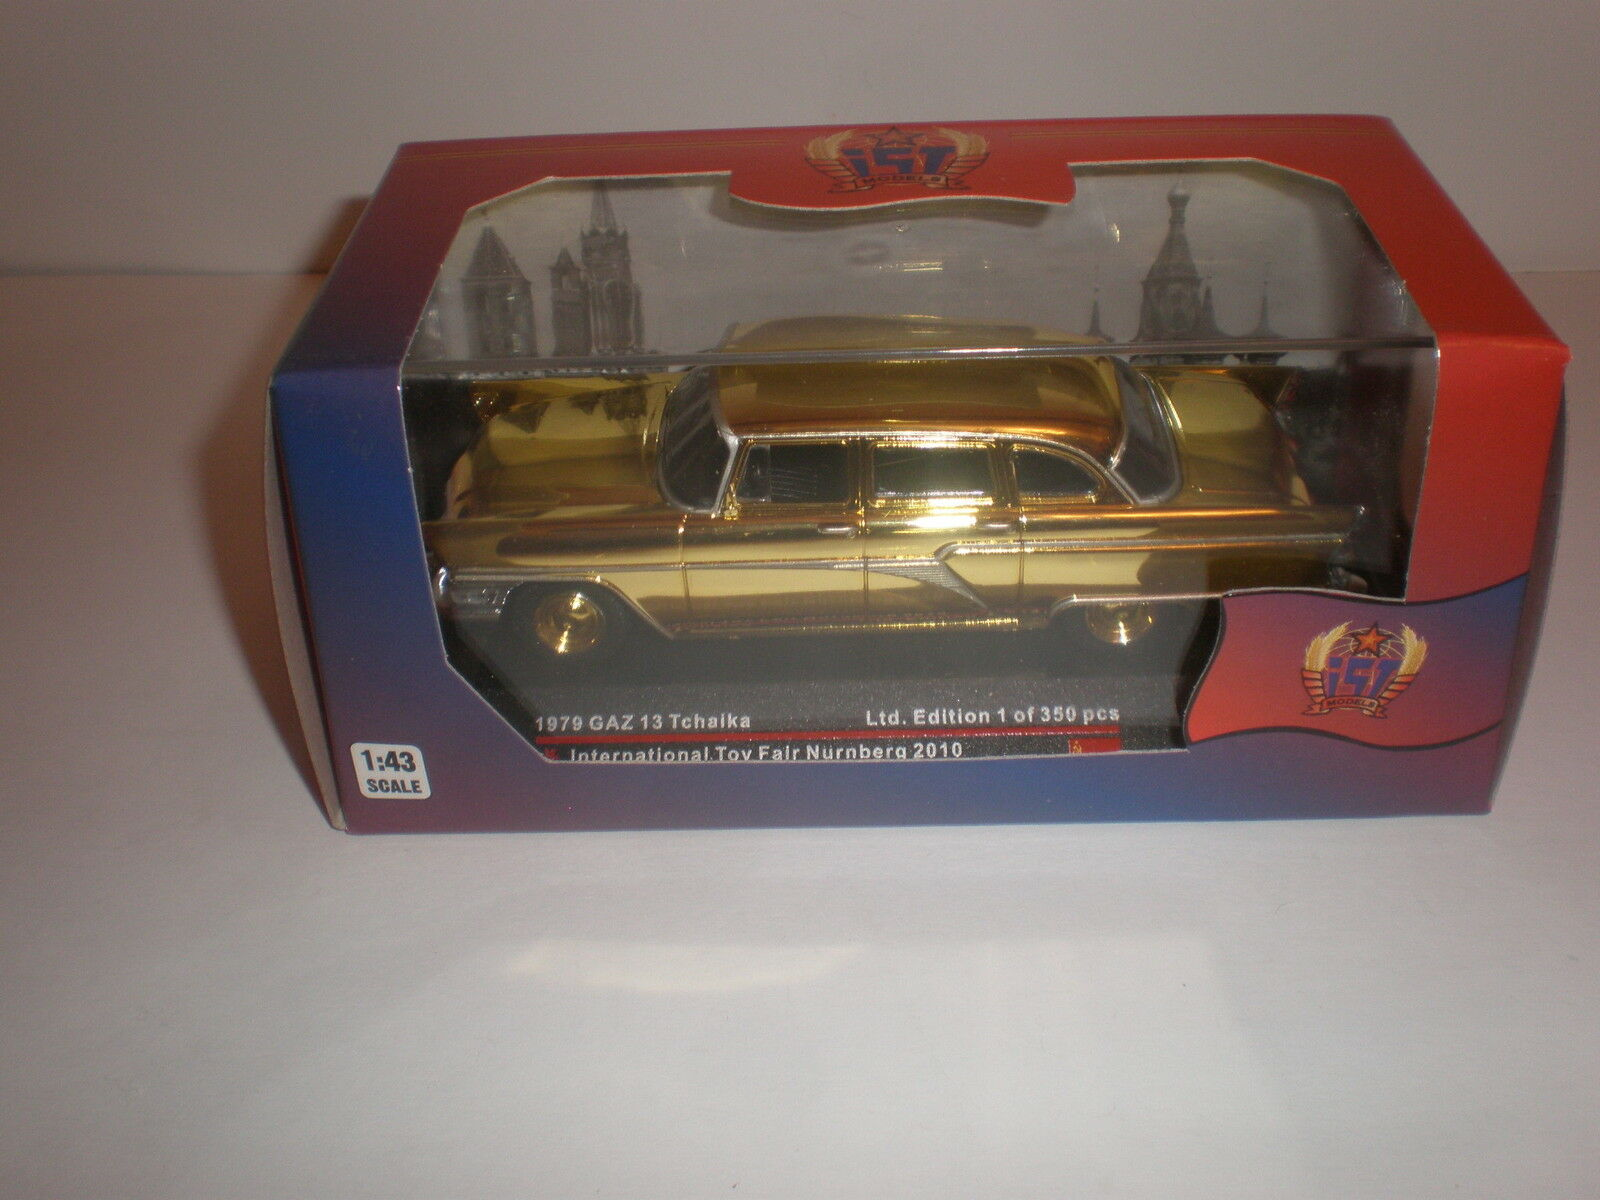 1 43 1979 GAZ-13 Tchaika  Intrnational Toy Fair Nurnberg 2010  Limited 350pcs.